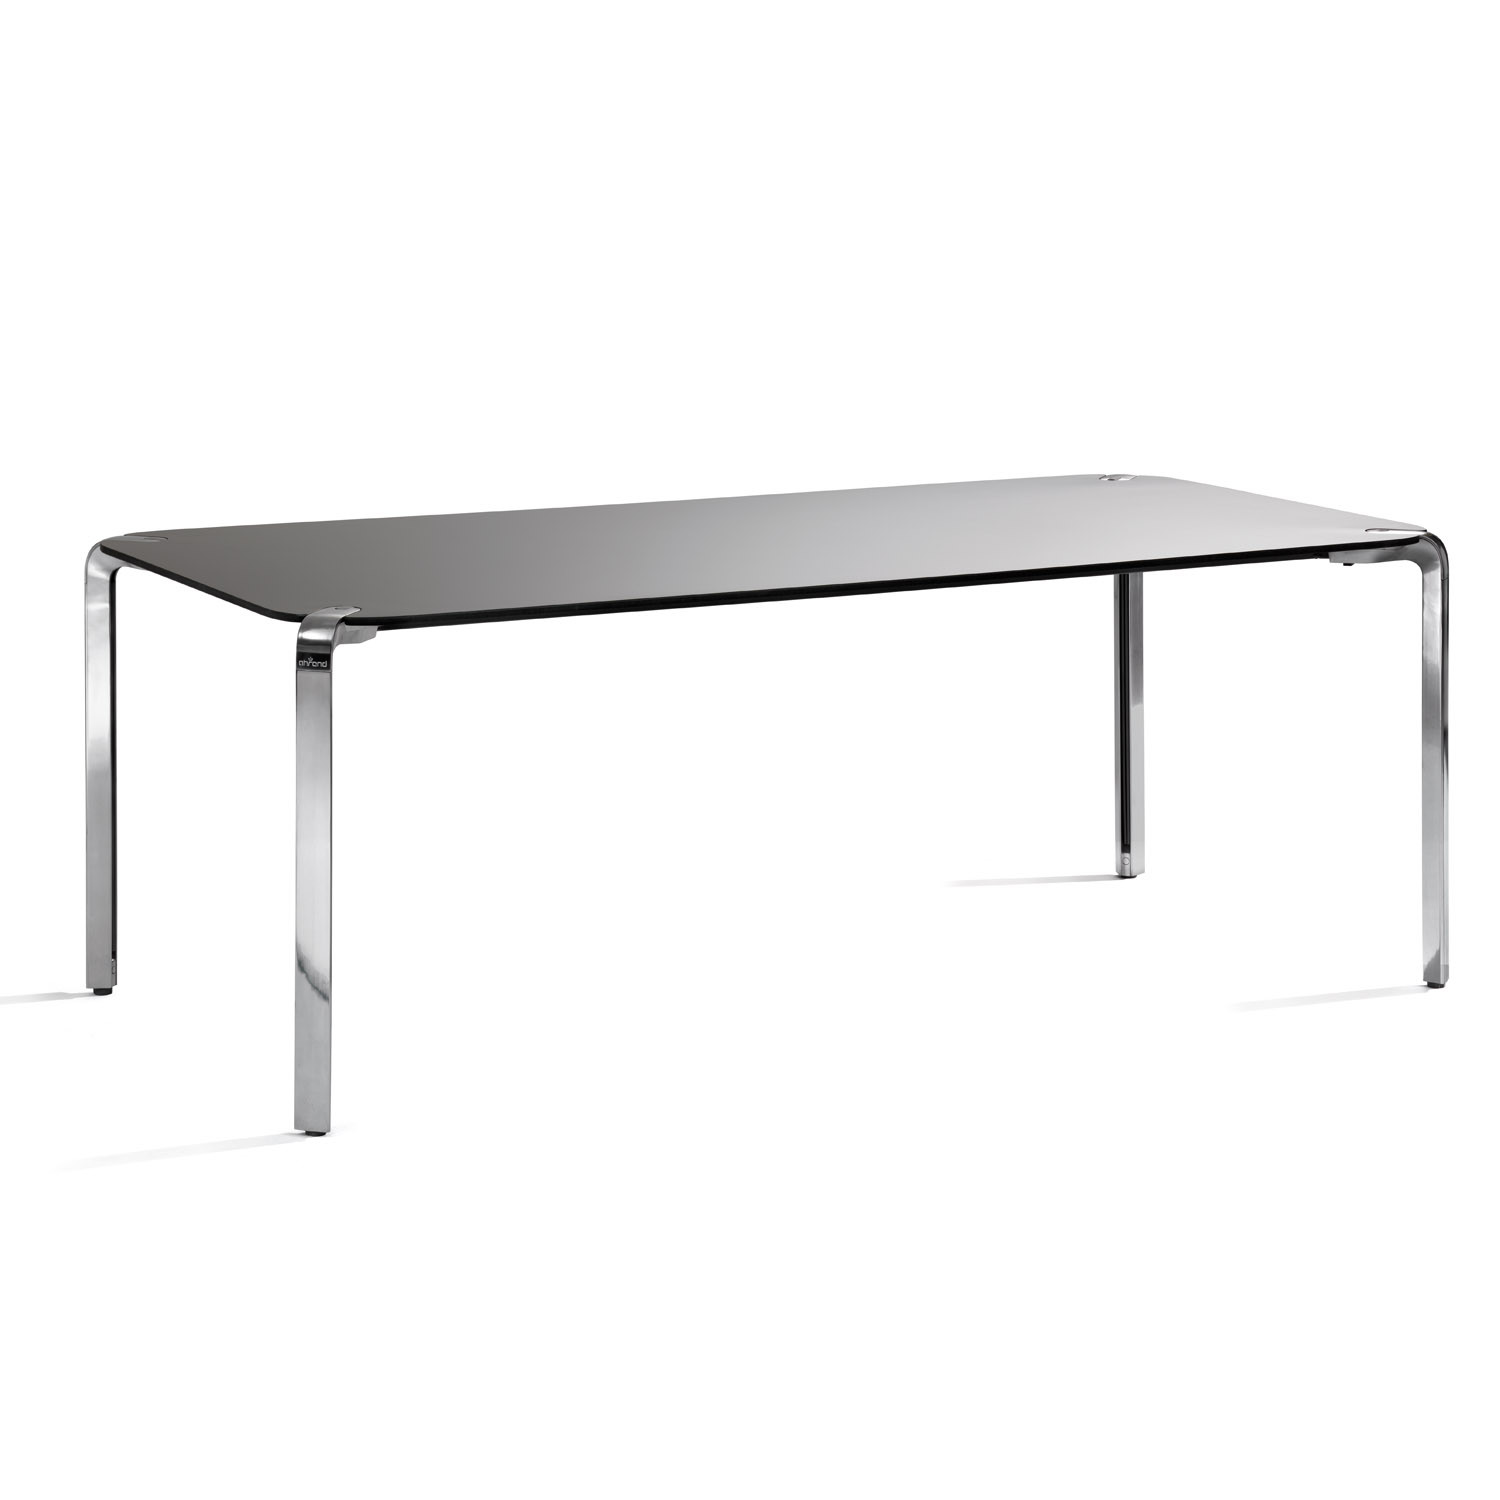 Ahrend 315 Office or Home Table